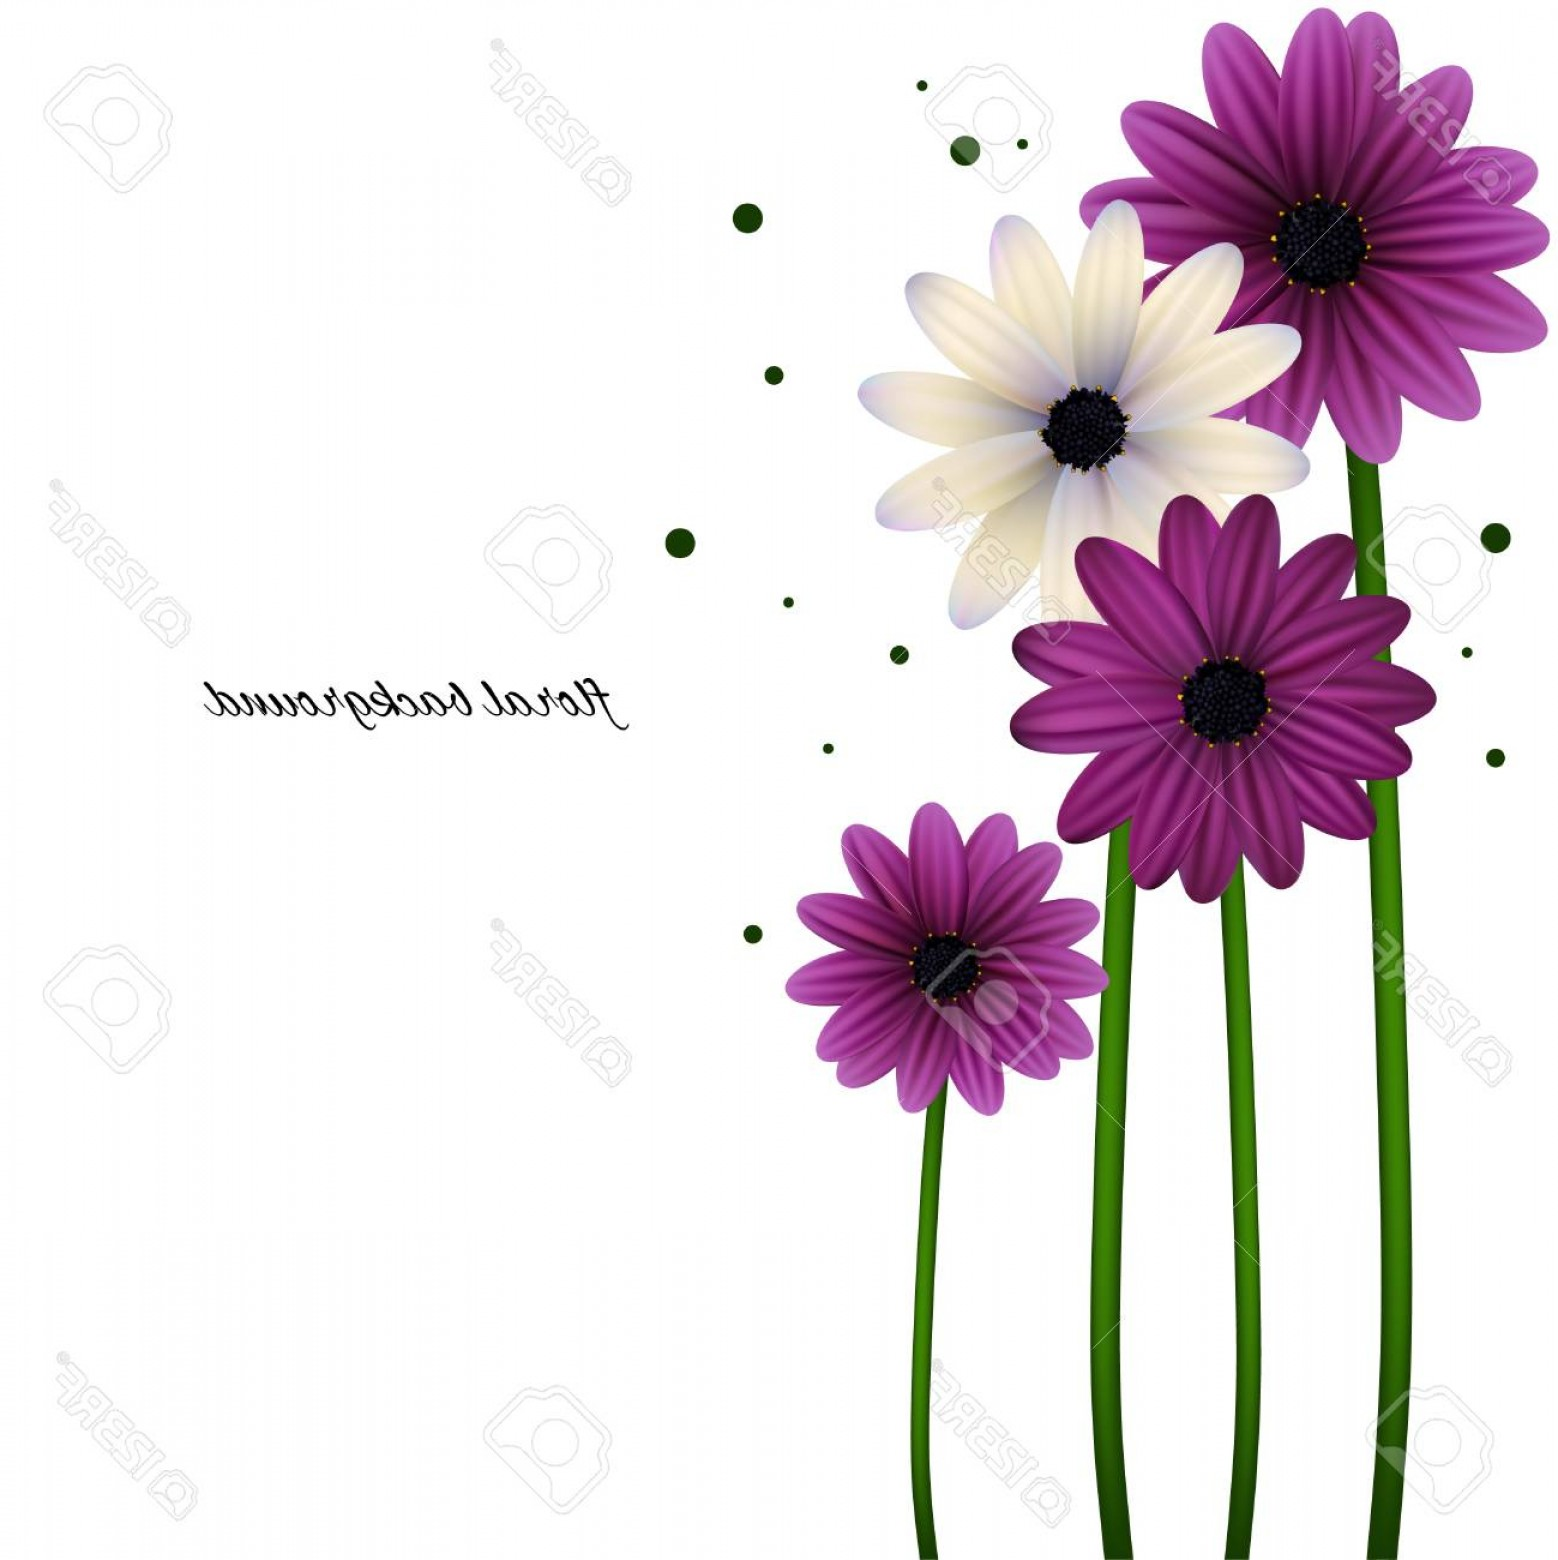 Purple Gerber Daisy Vector Framw: Photostock Vector Floral Background Can Be Use For Frames And Cards Gerberas Daisies Plants Flora Vector Illustration